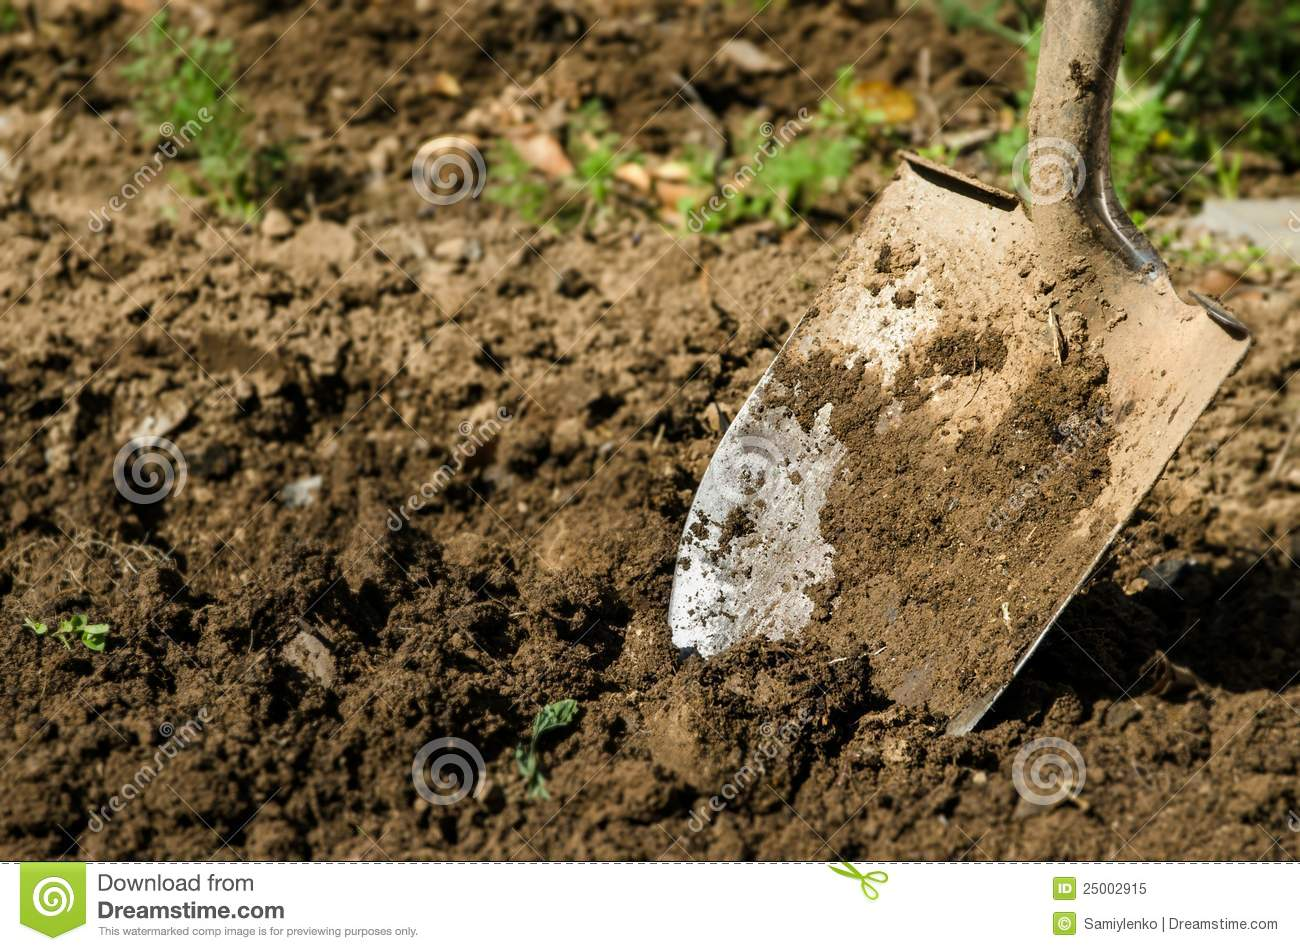 Shovel on the ground stock photo 55466034 for Digging ground dream meaning